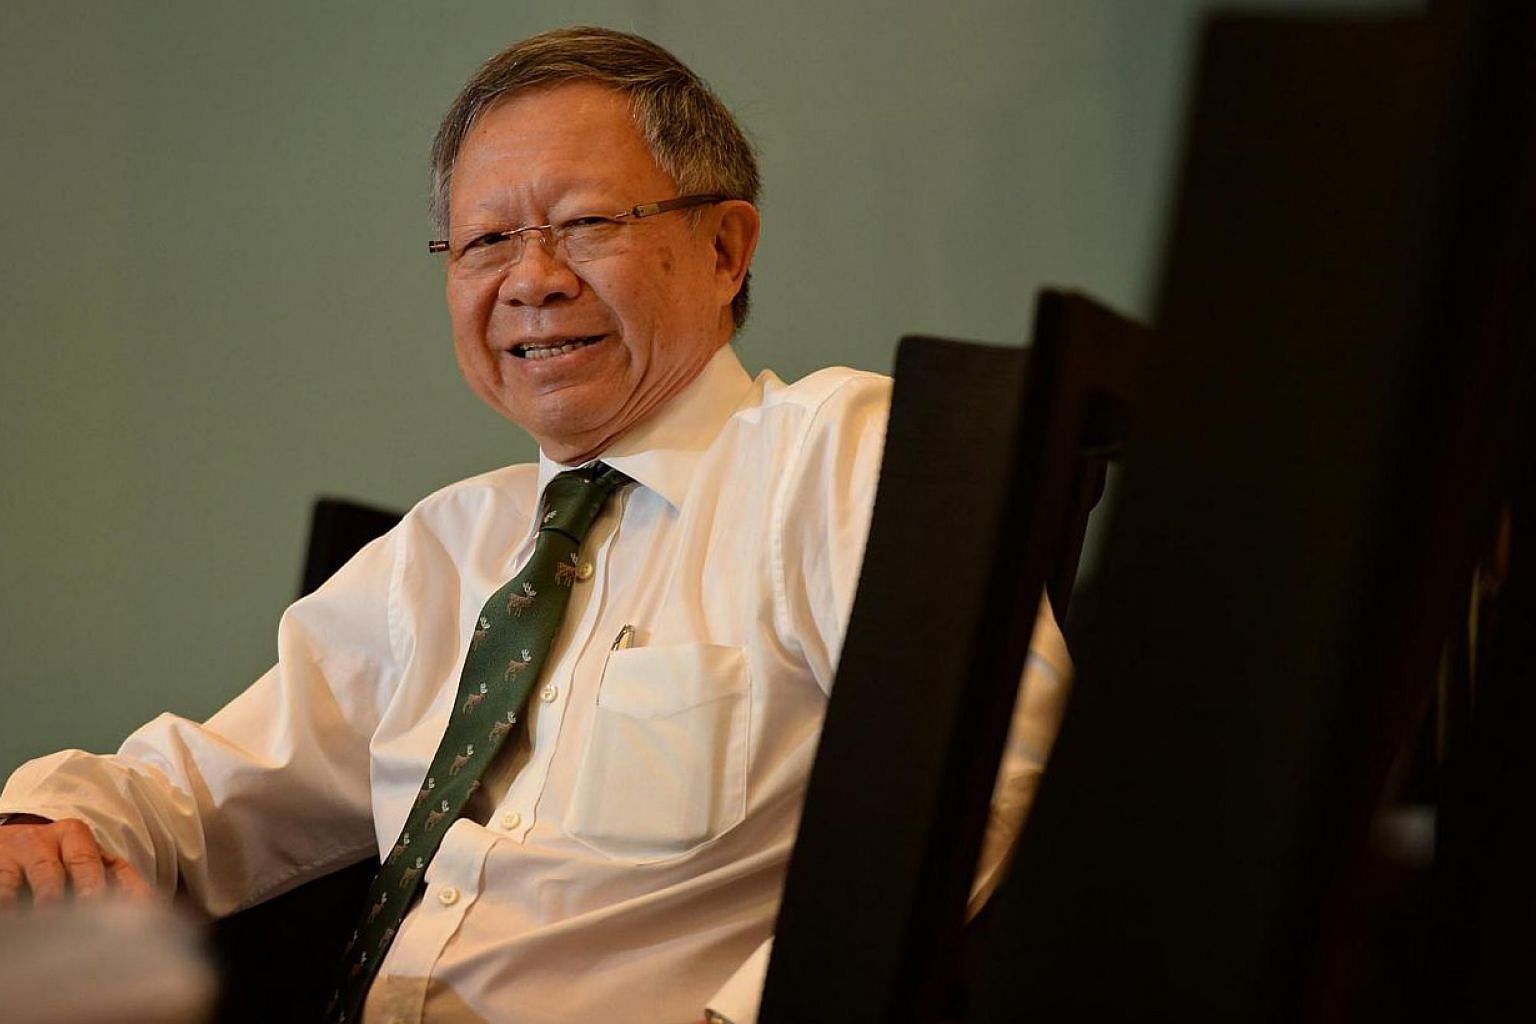 """Mr Teo says that while meritocracy remains important, """"we need to continue to redefine 'merit', as the needs of the public service evolve and change""""."""